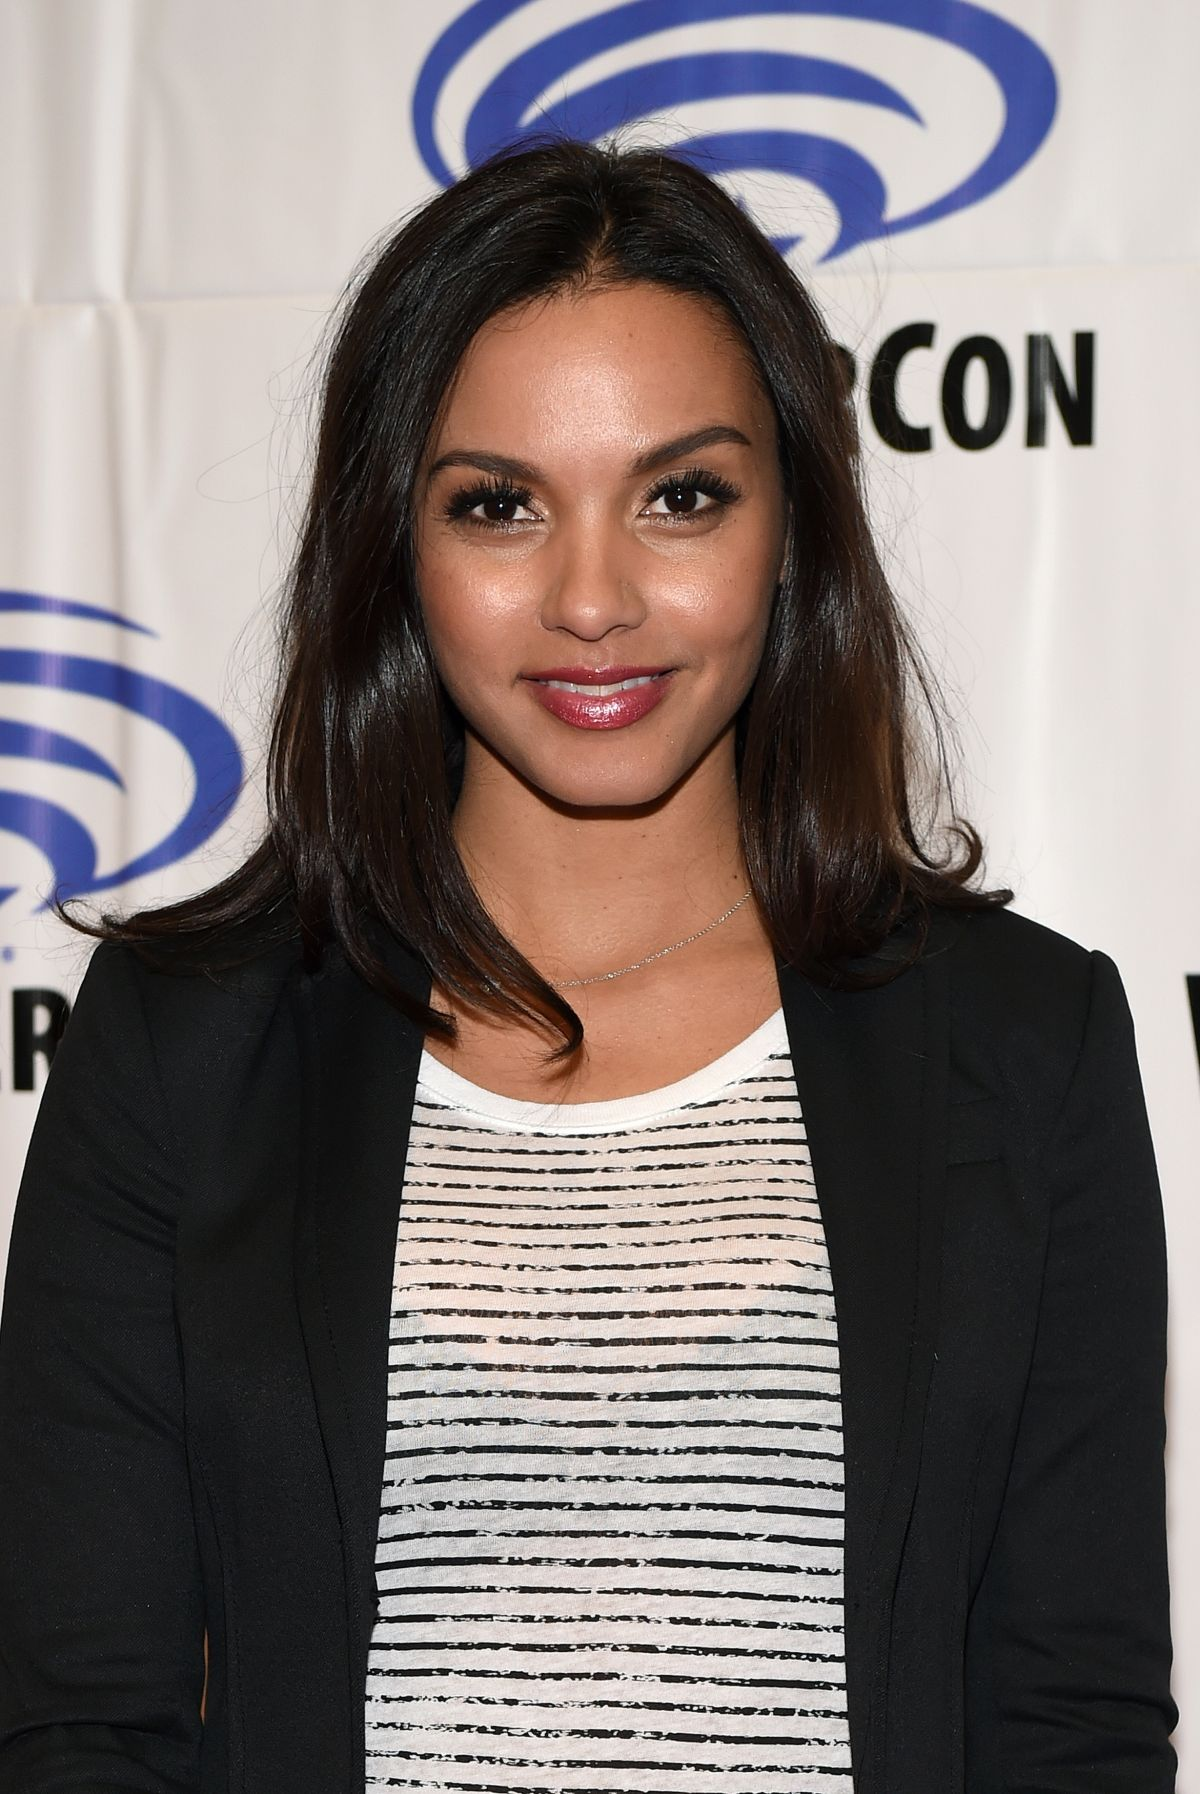 JESSICA LUCAS at Gotham Panel at WonderCon in Anaheim 04/02/2017